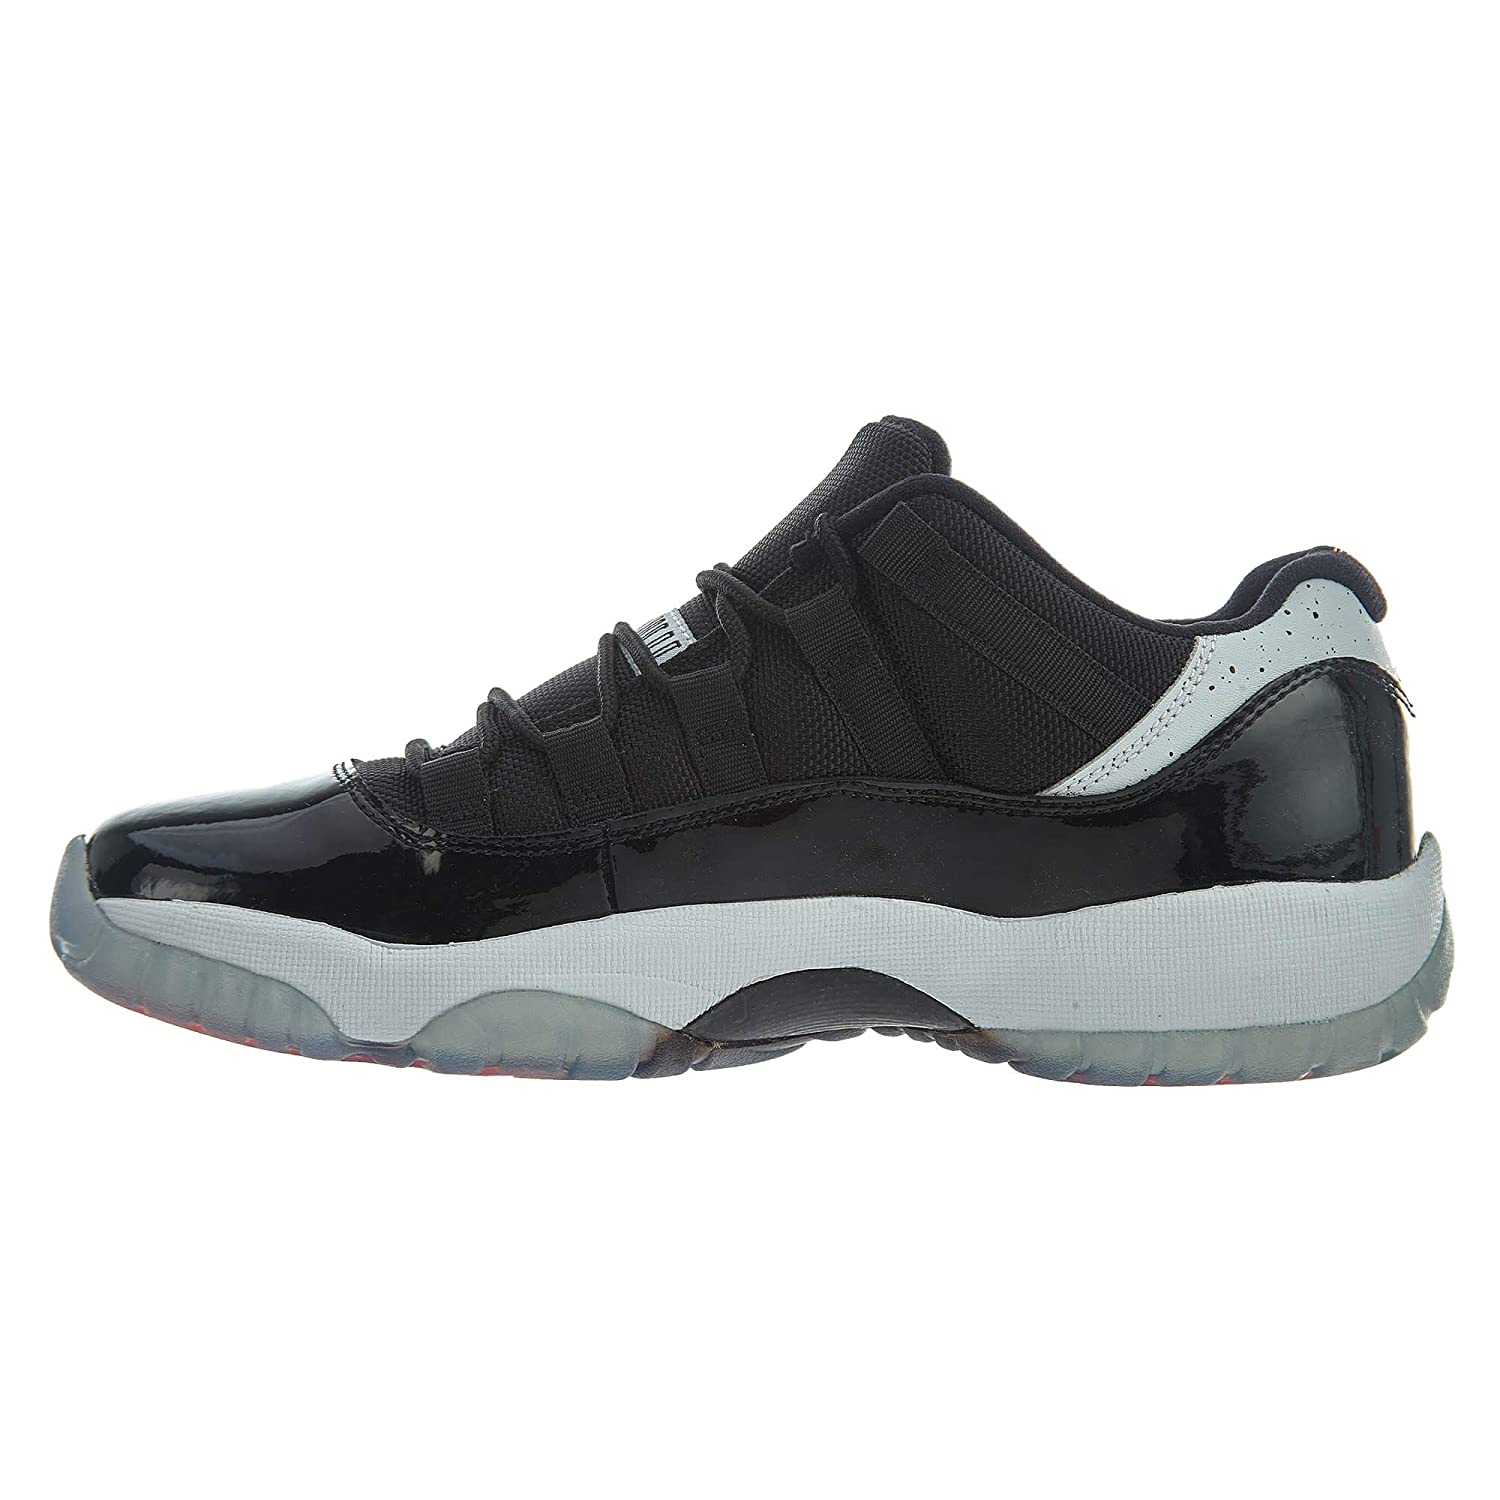 best service e9881 c63b4 Amazon.com   Air Jordan 11 Retro Low